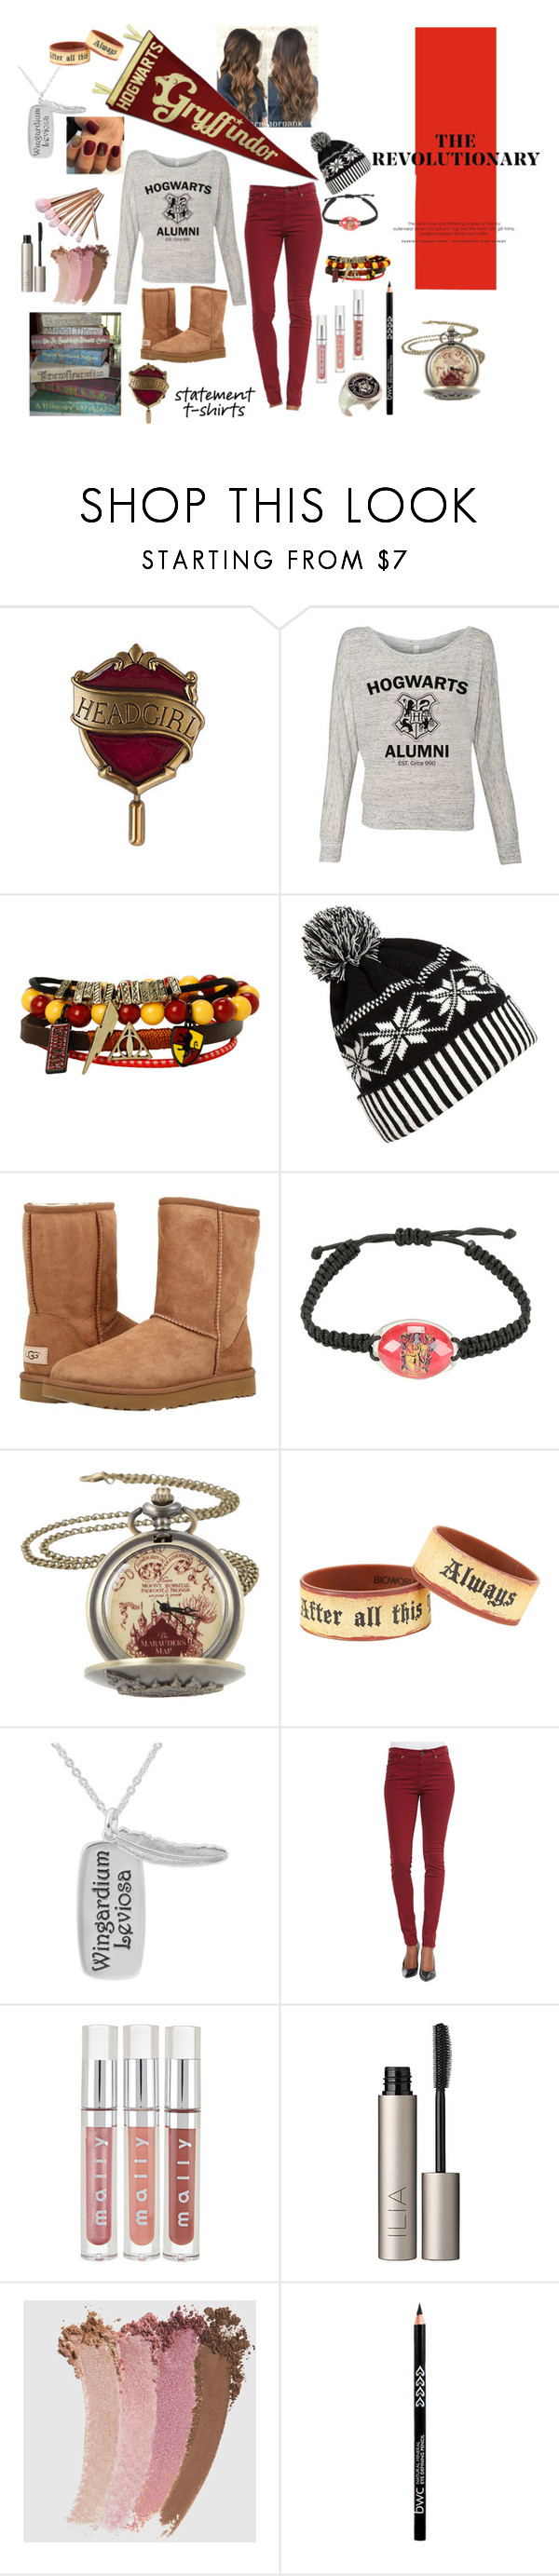 """Can you say Gryffindor Graduate"" by designed-by-me ❤ liked on Polyvore featuring Warner Bros., WithChic, UGG Australia, 7 For All Mankind, Ilia, Gucci and harrypotter"